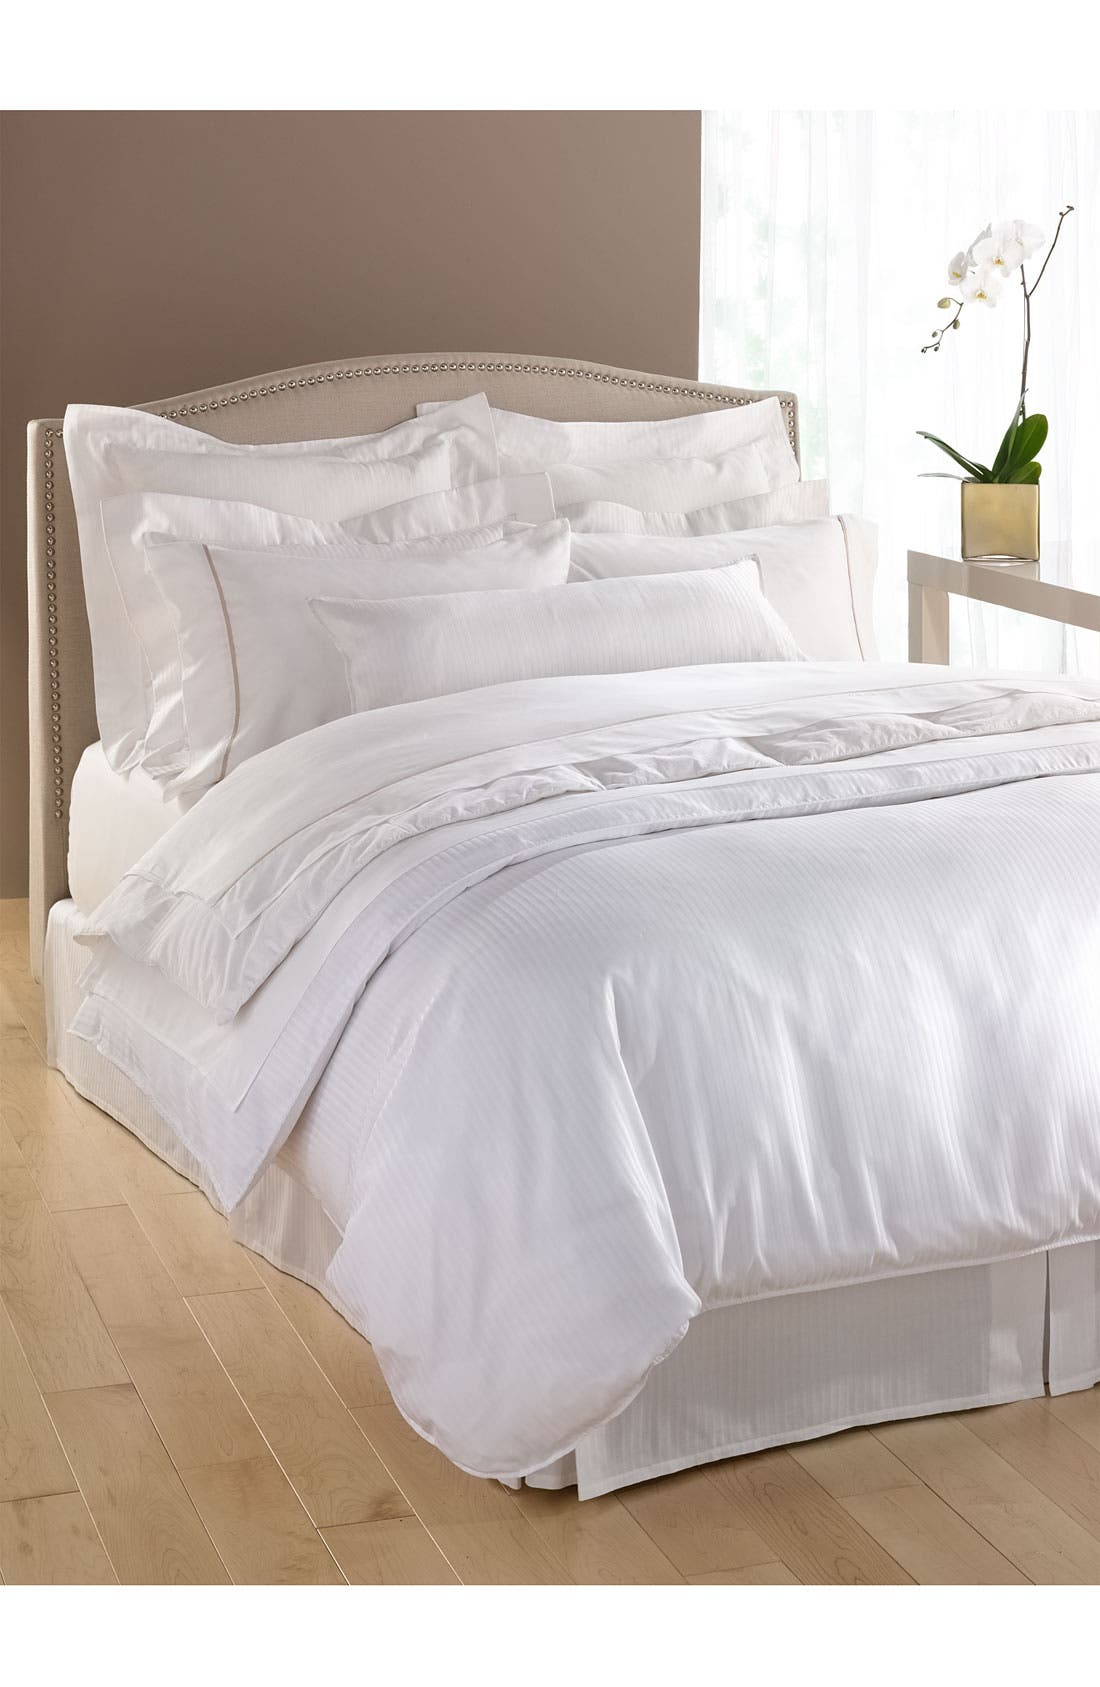 Alternate Image 3  - Westin At Home 300 Thread Count Luxe Fitted Sheet